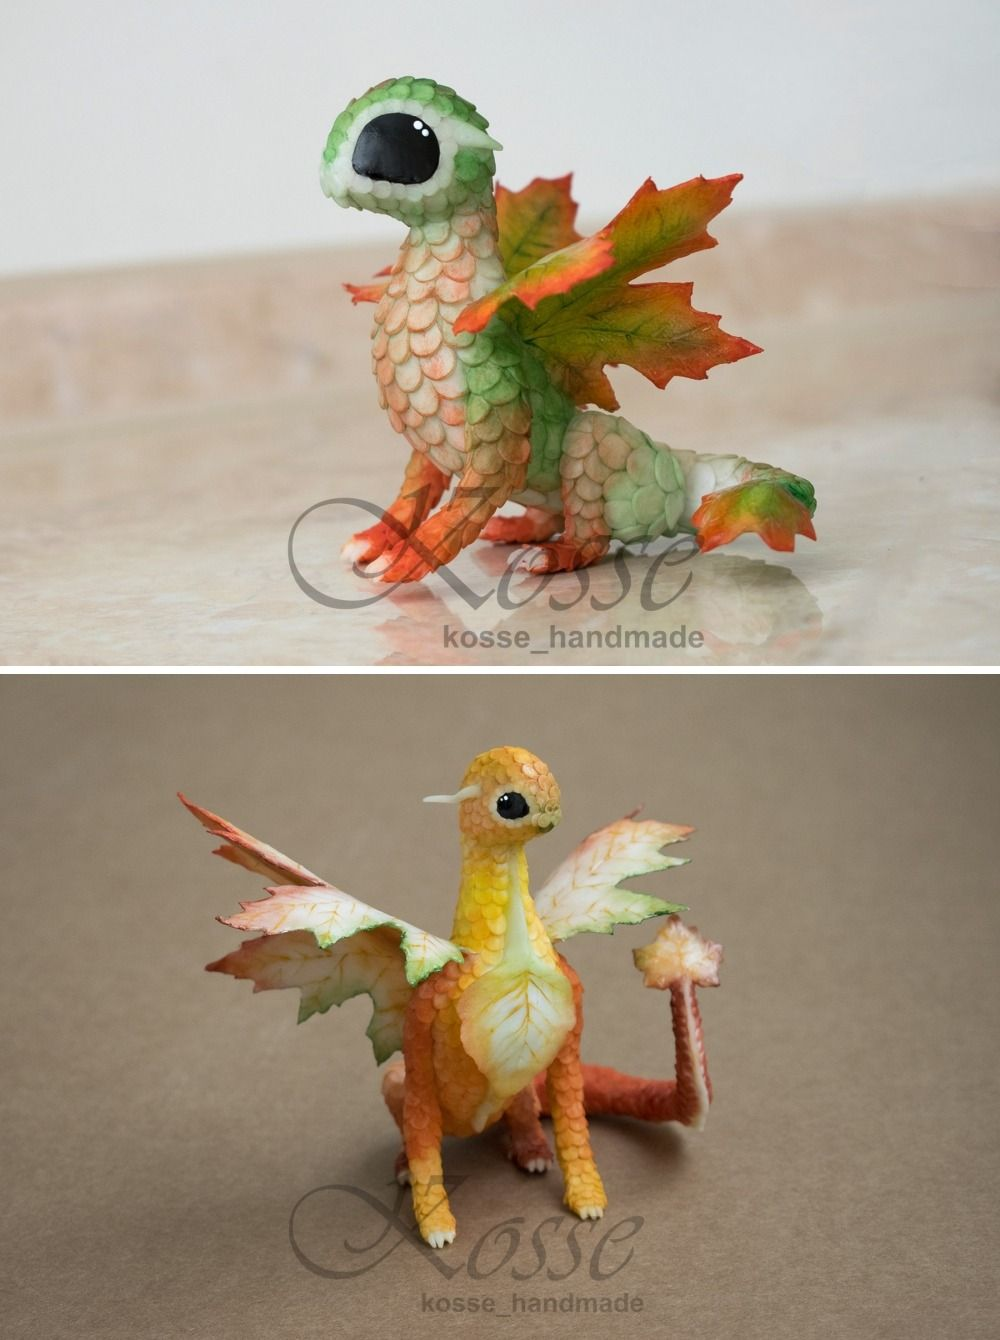 http://sosuperawesome.com/post/167673336715/glow-in-the-dark-dragons-by-victoria-kosse-on-etsy